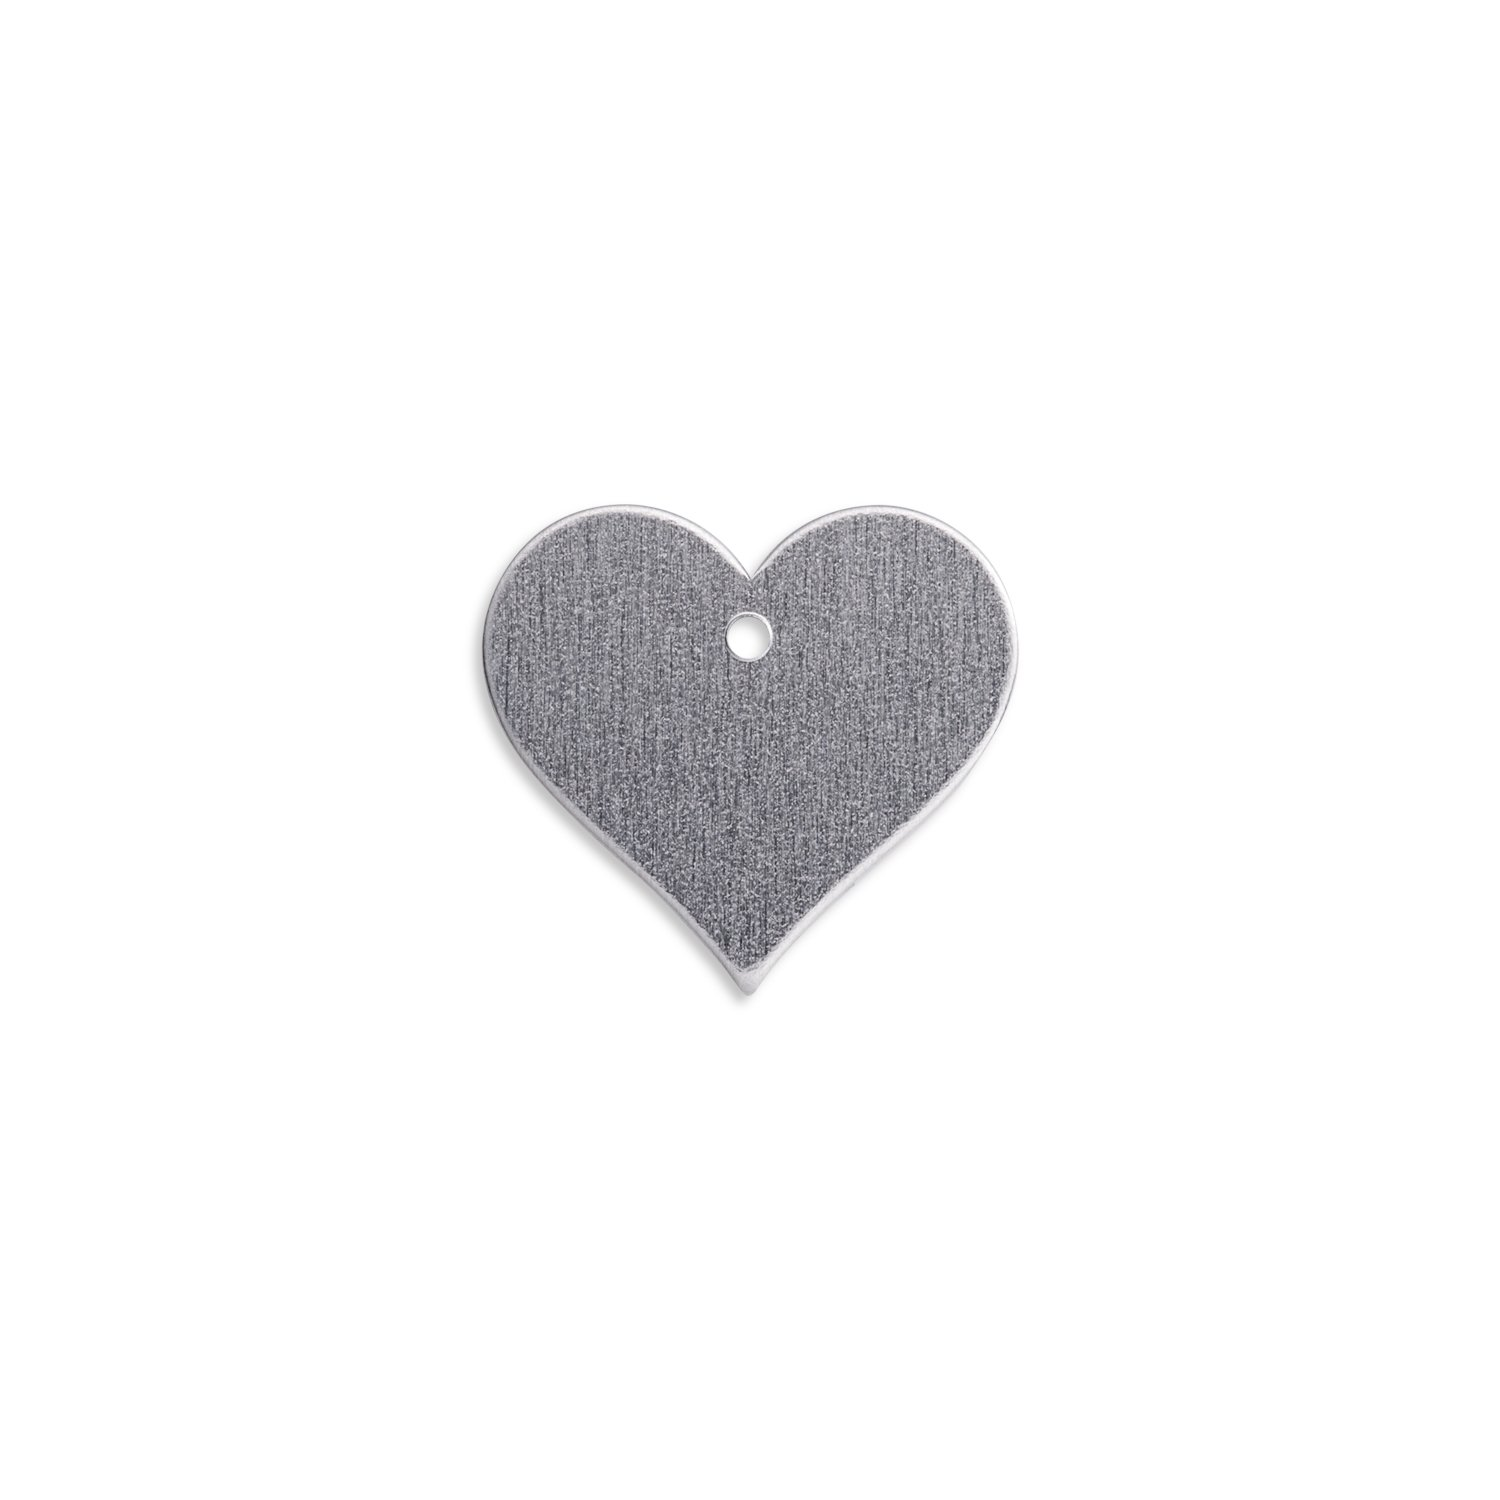 "RMP Stamping Blanks, 1.151"" x 1.25"" Heart with Hole, Aluminum .063"" (14 Ga.)- 50 Pack"